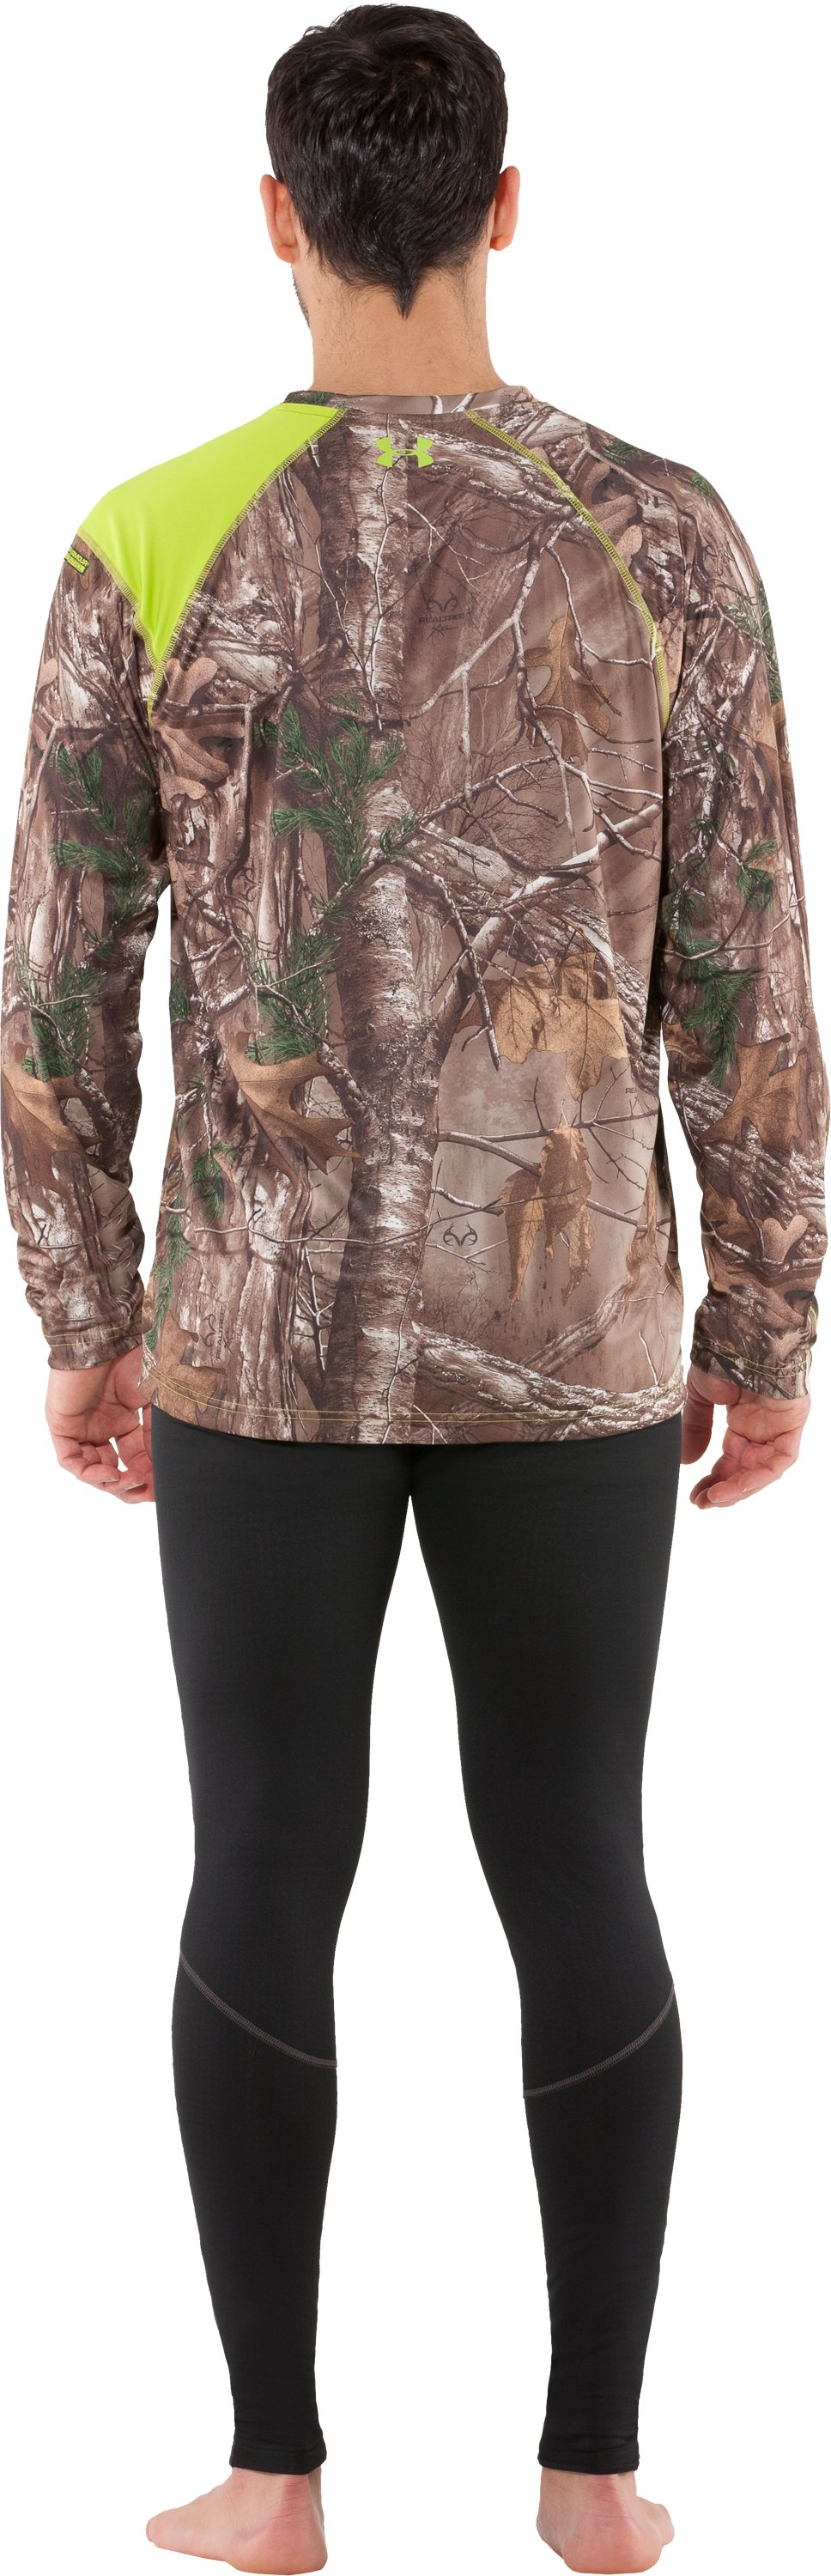 Men's HeatGear® Evo Scent Control Long Sleeve, REALTREE AP-XTRA, Back